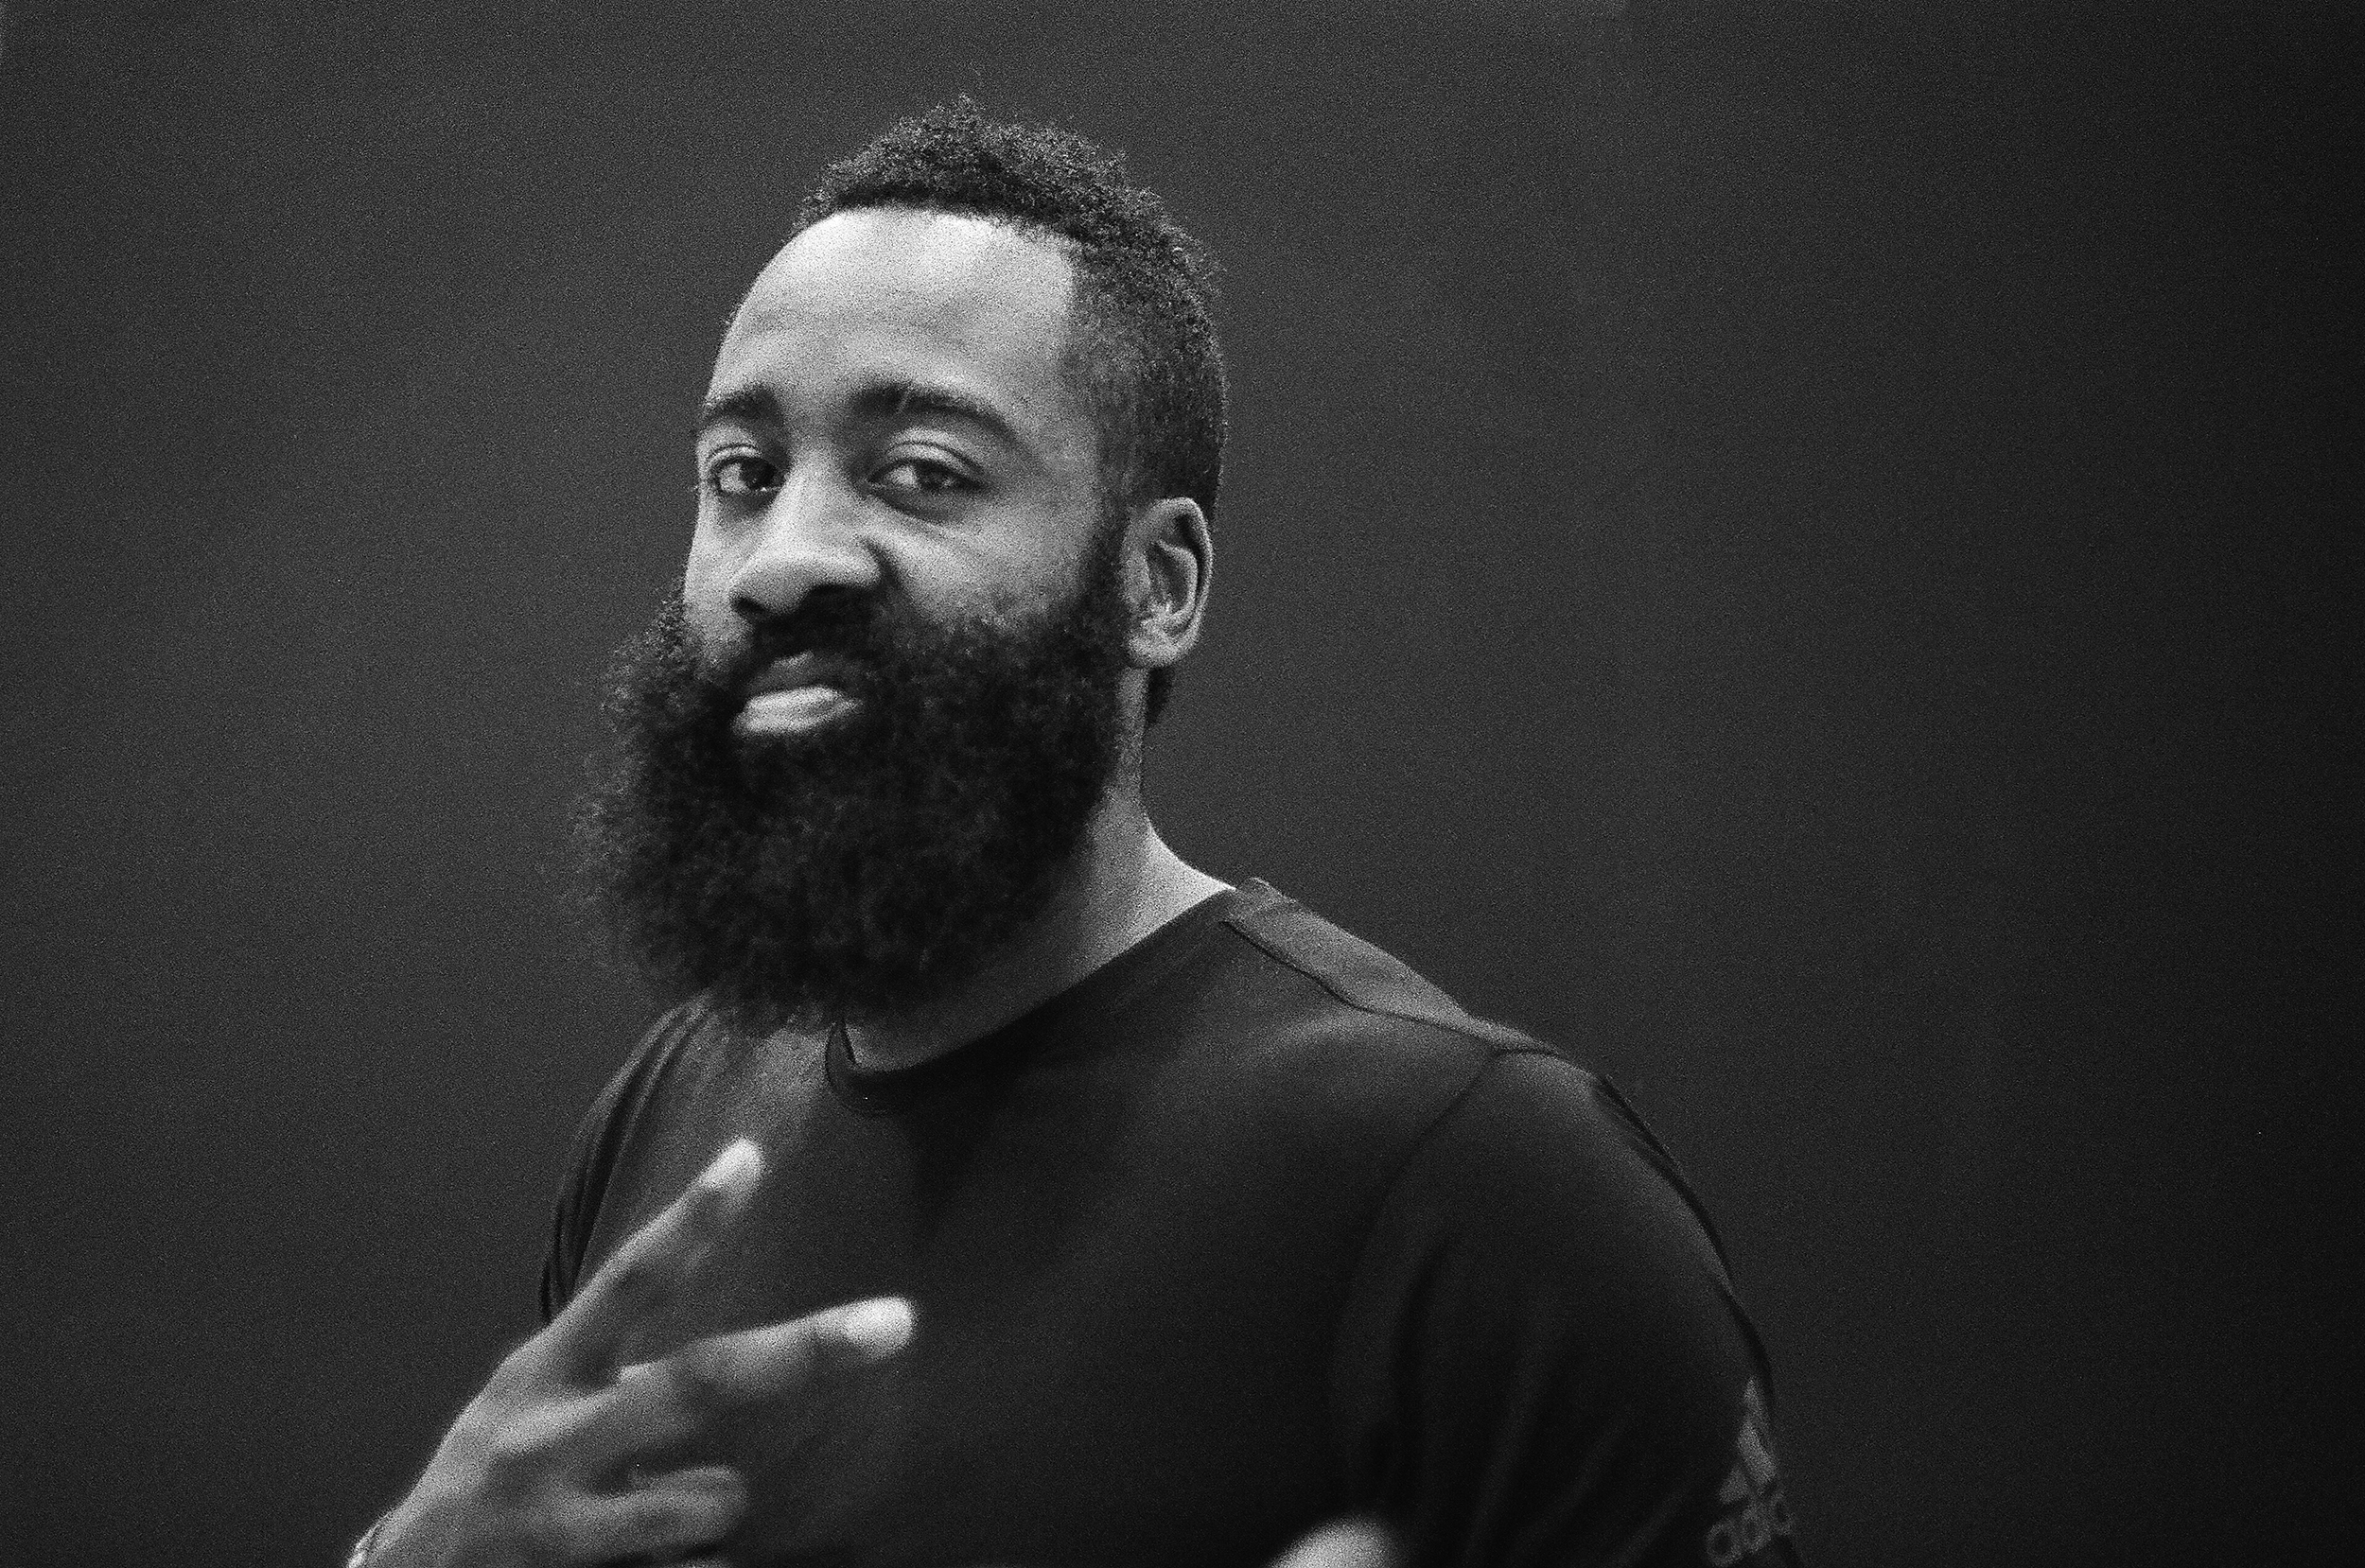 James_Harden_by_Terry_Snyder_03.jpg